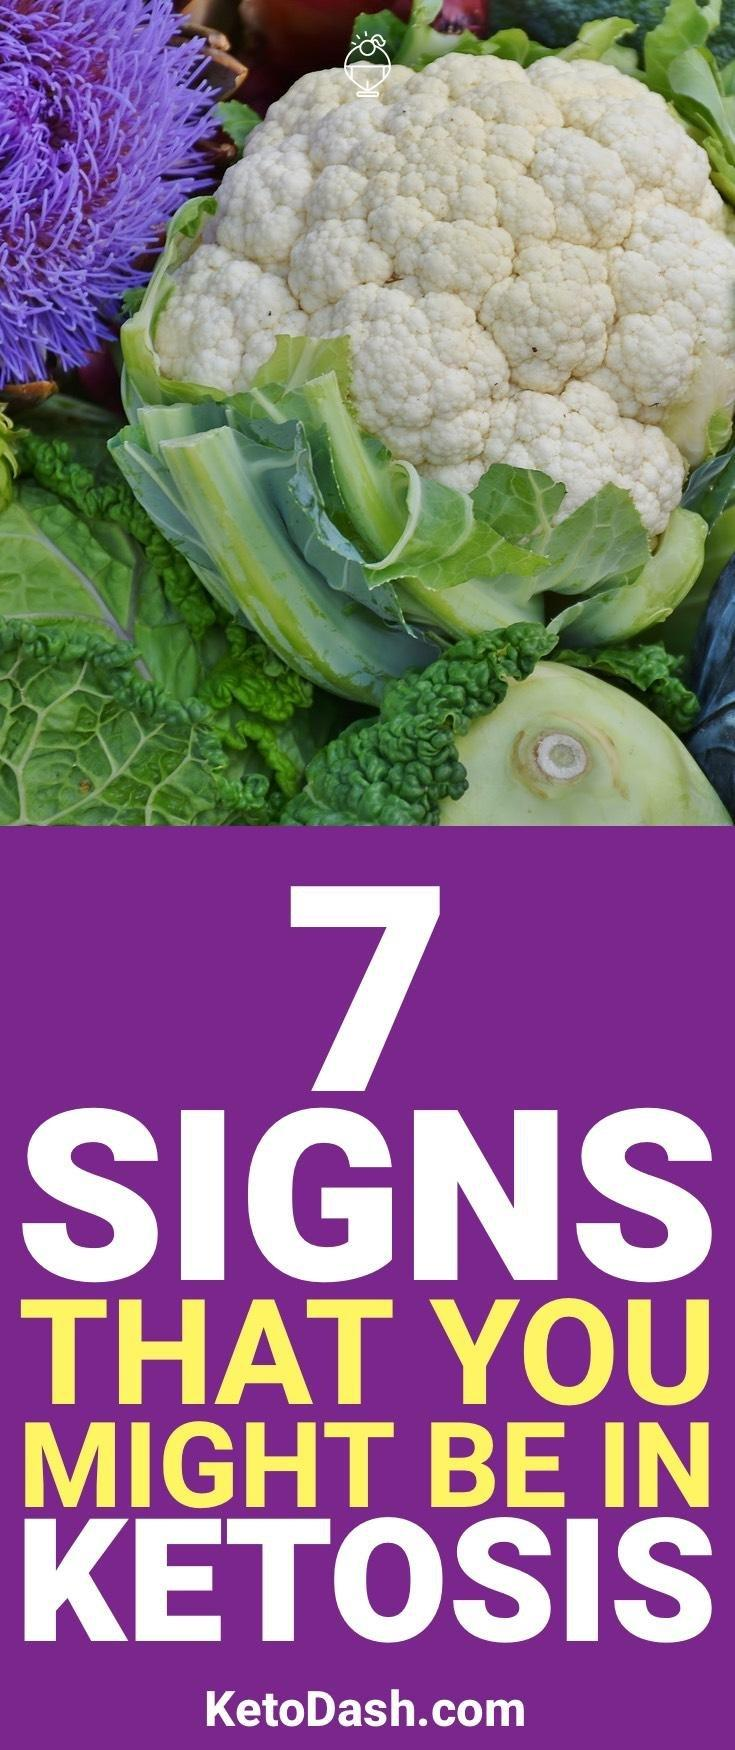 7 Signs You Might Be In Ketosis When Doing The Ketogenic Diet